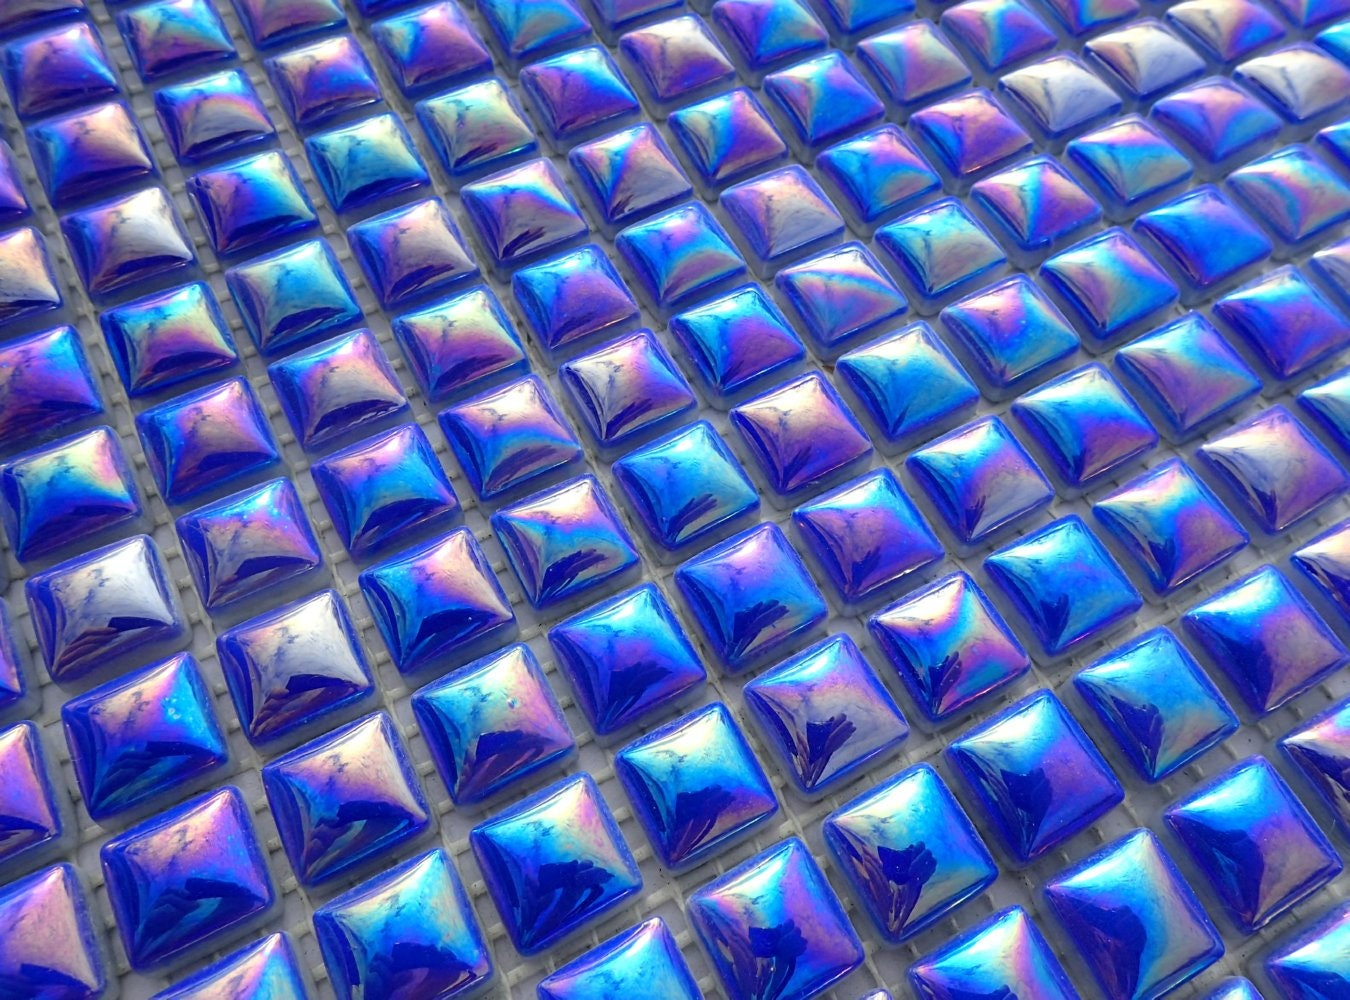 Blue Iridescent Glass Tiles - 5/8 - Domed Top 25 Mosaic Tiles